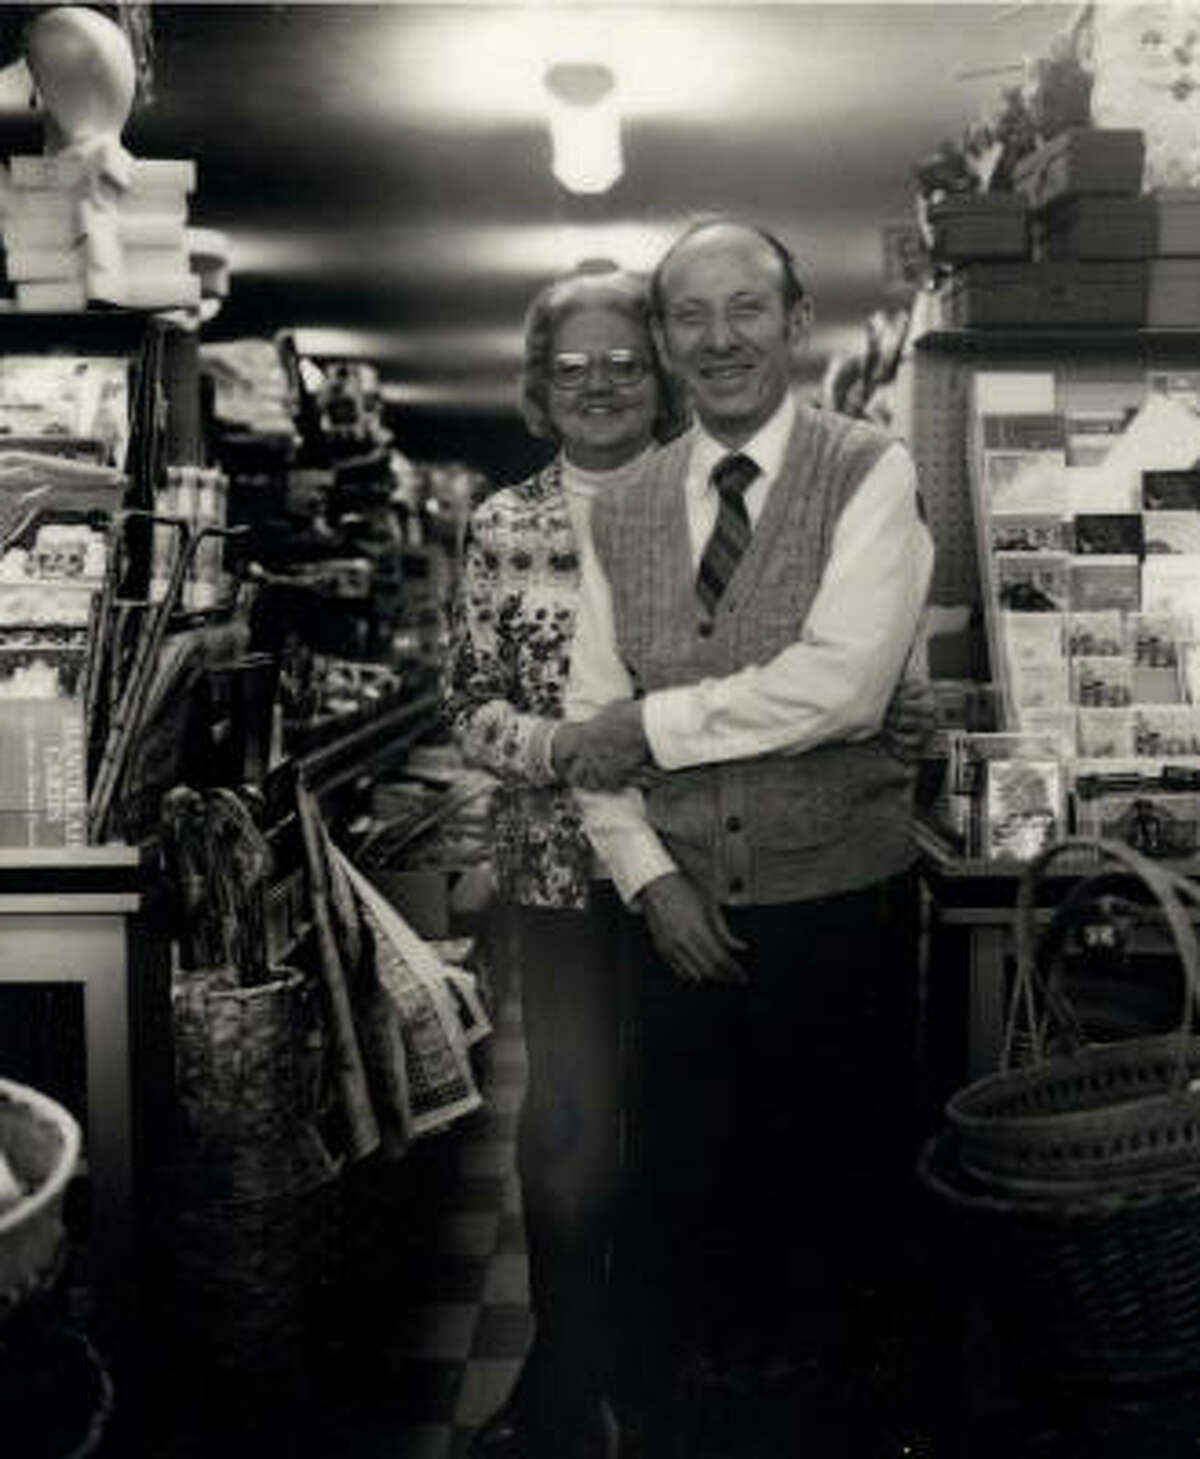 Both now deceased, the Klingers were among the Rice Village's best-known mom-and-pop retailers. They are pictured here among their myriad merchandise, date unknown.